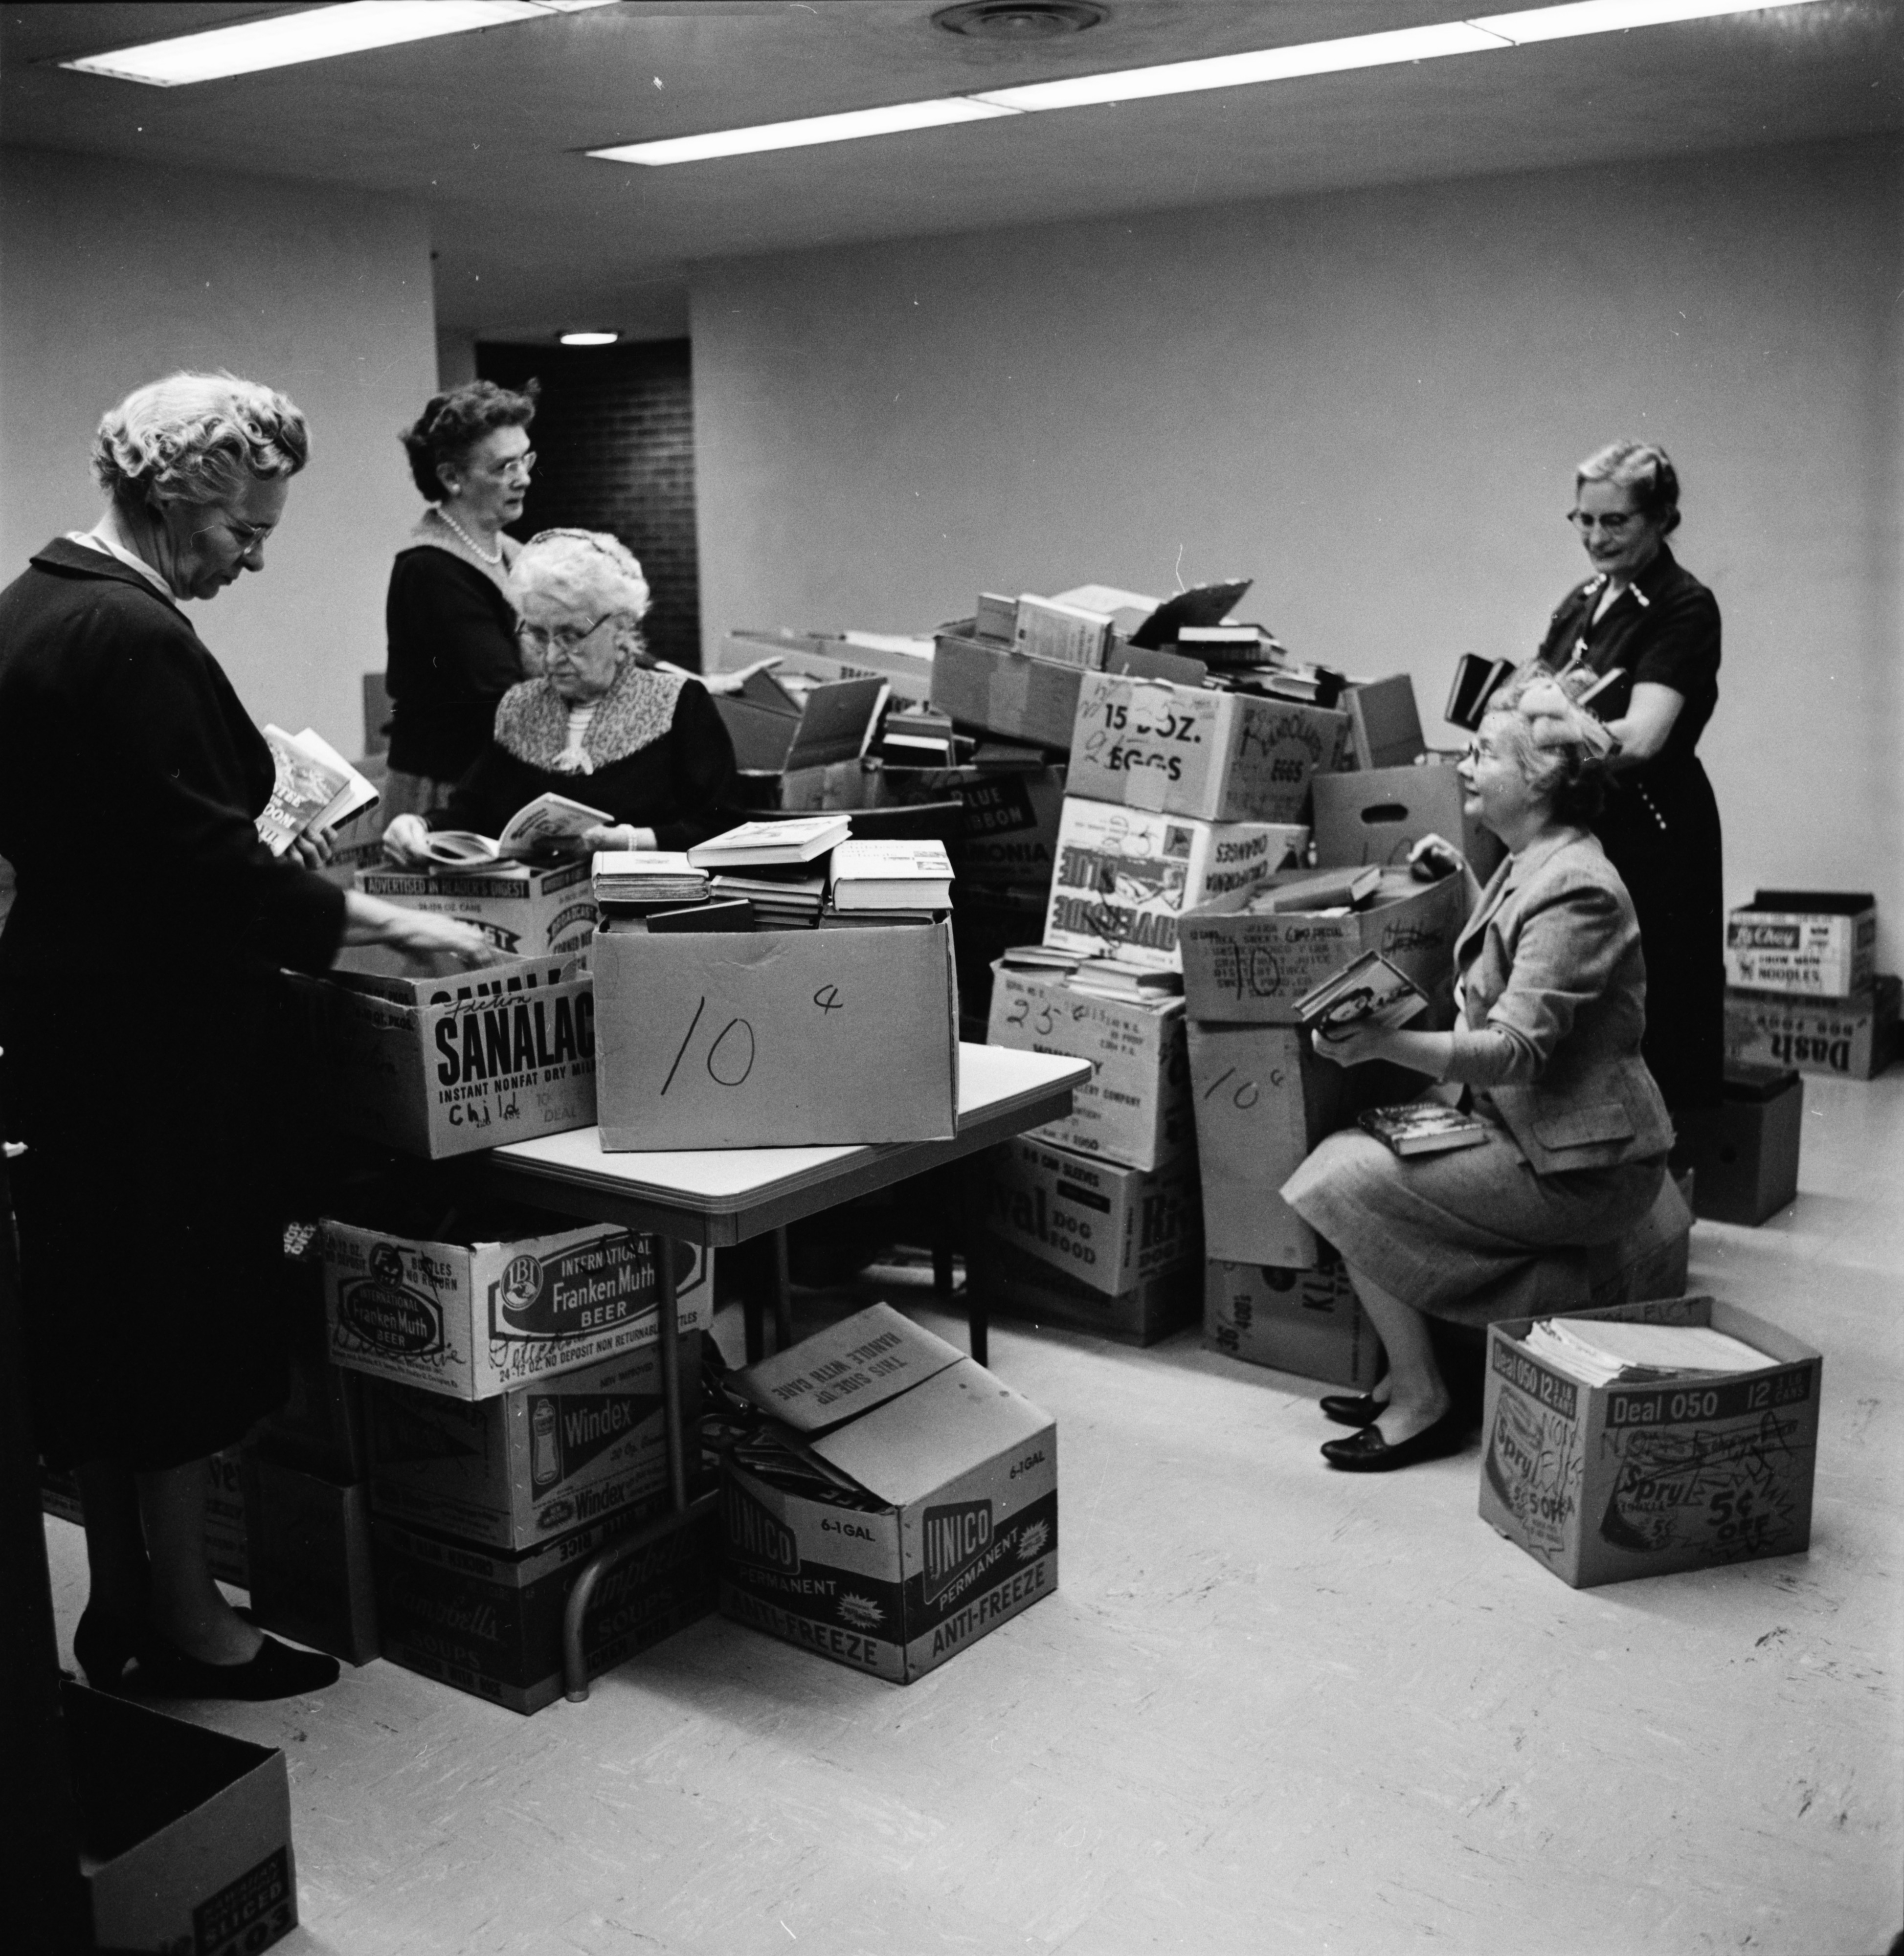 Friends of the Ann Arbor Public Library Volunteers Prepare for Book Fair, May 1961 image